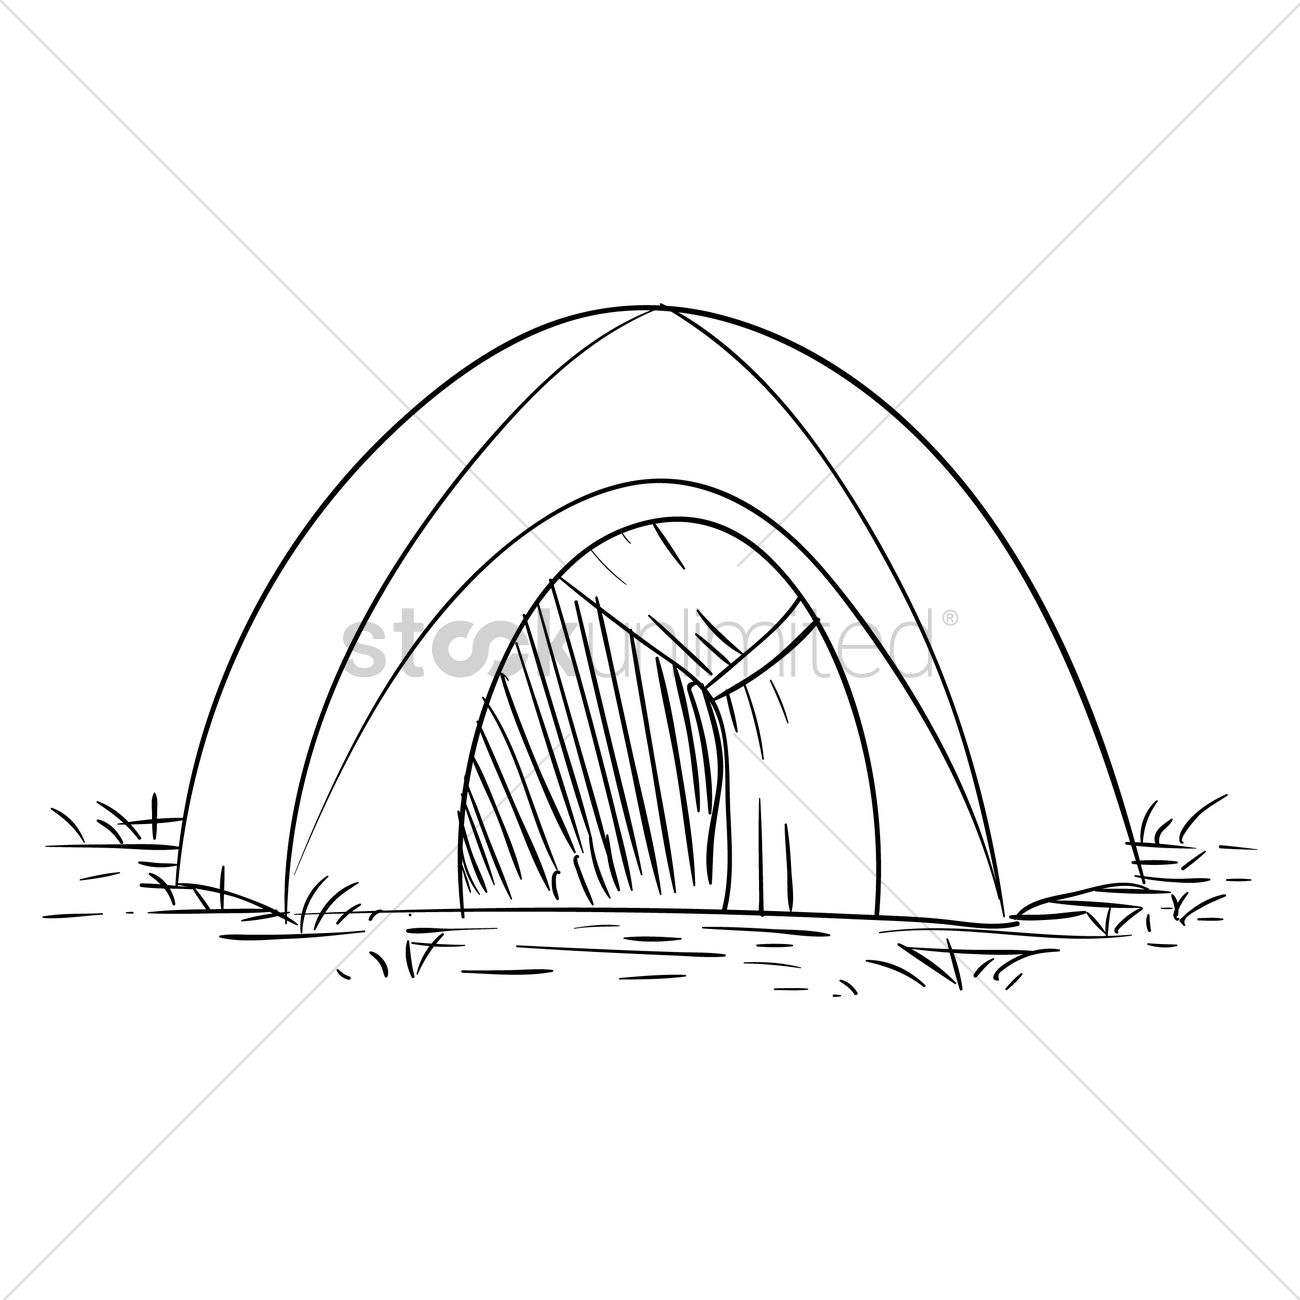 Free tent vector graphic  sc 1 st  StockUnlimited & Free Tent Vector Image - 1567311 | StockUnlimited